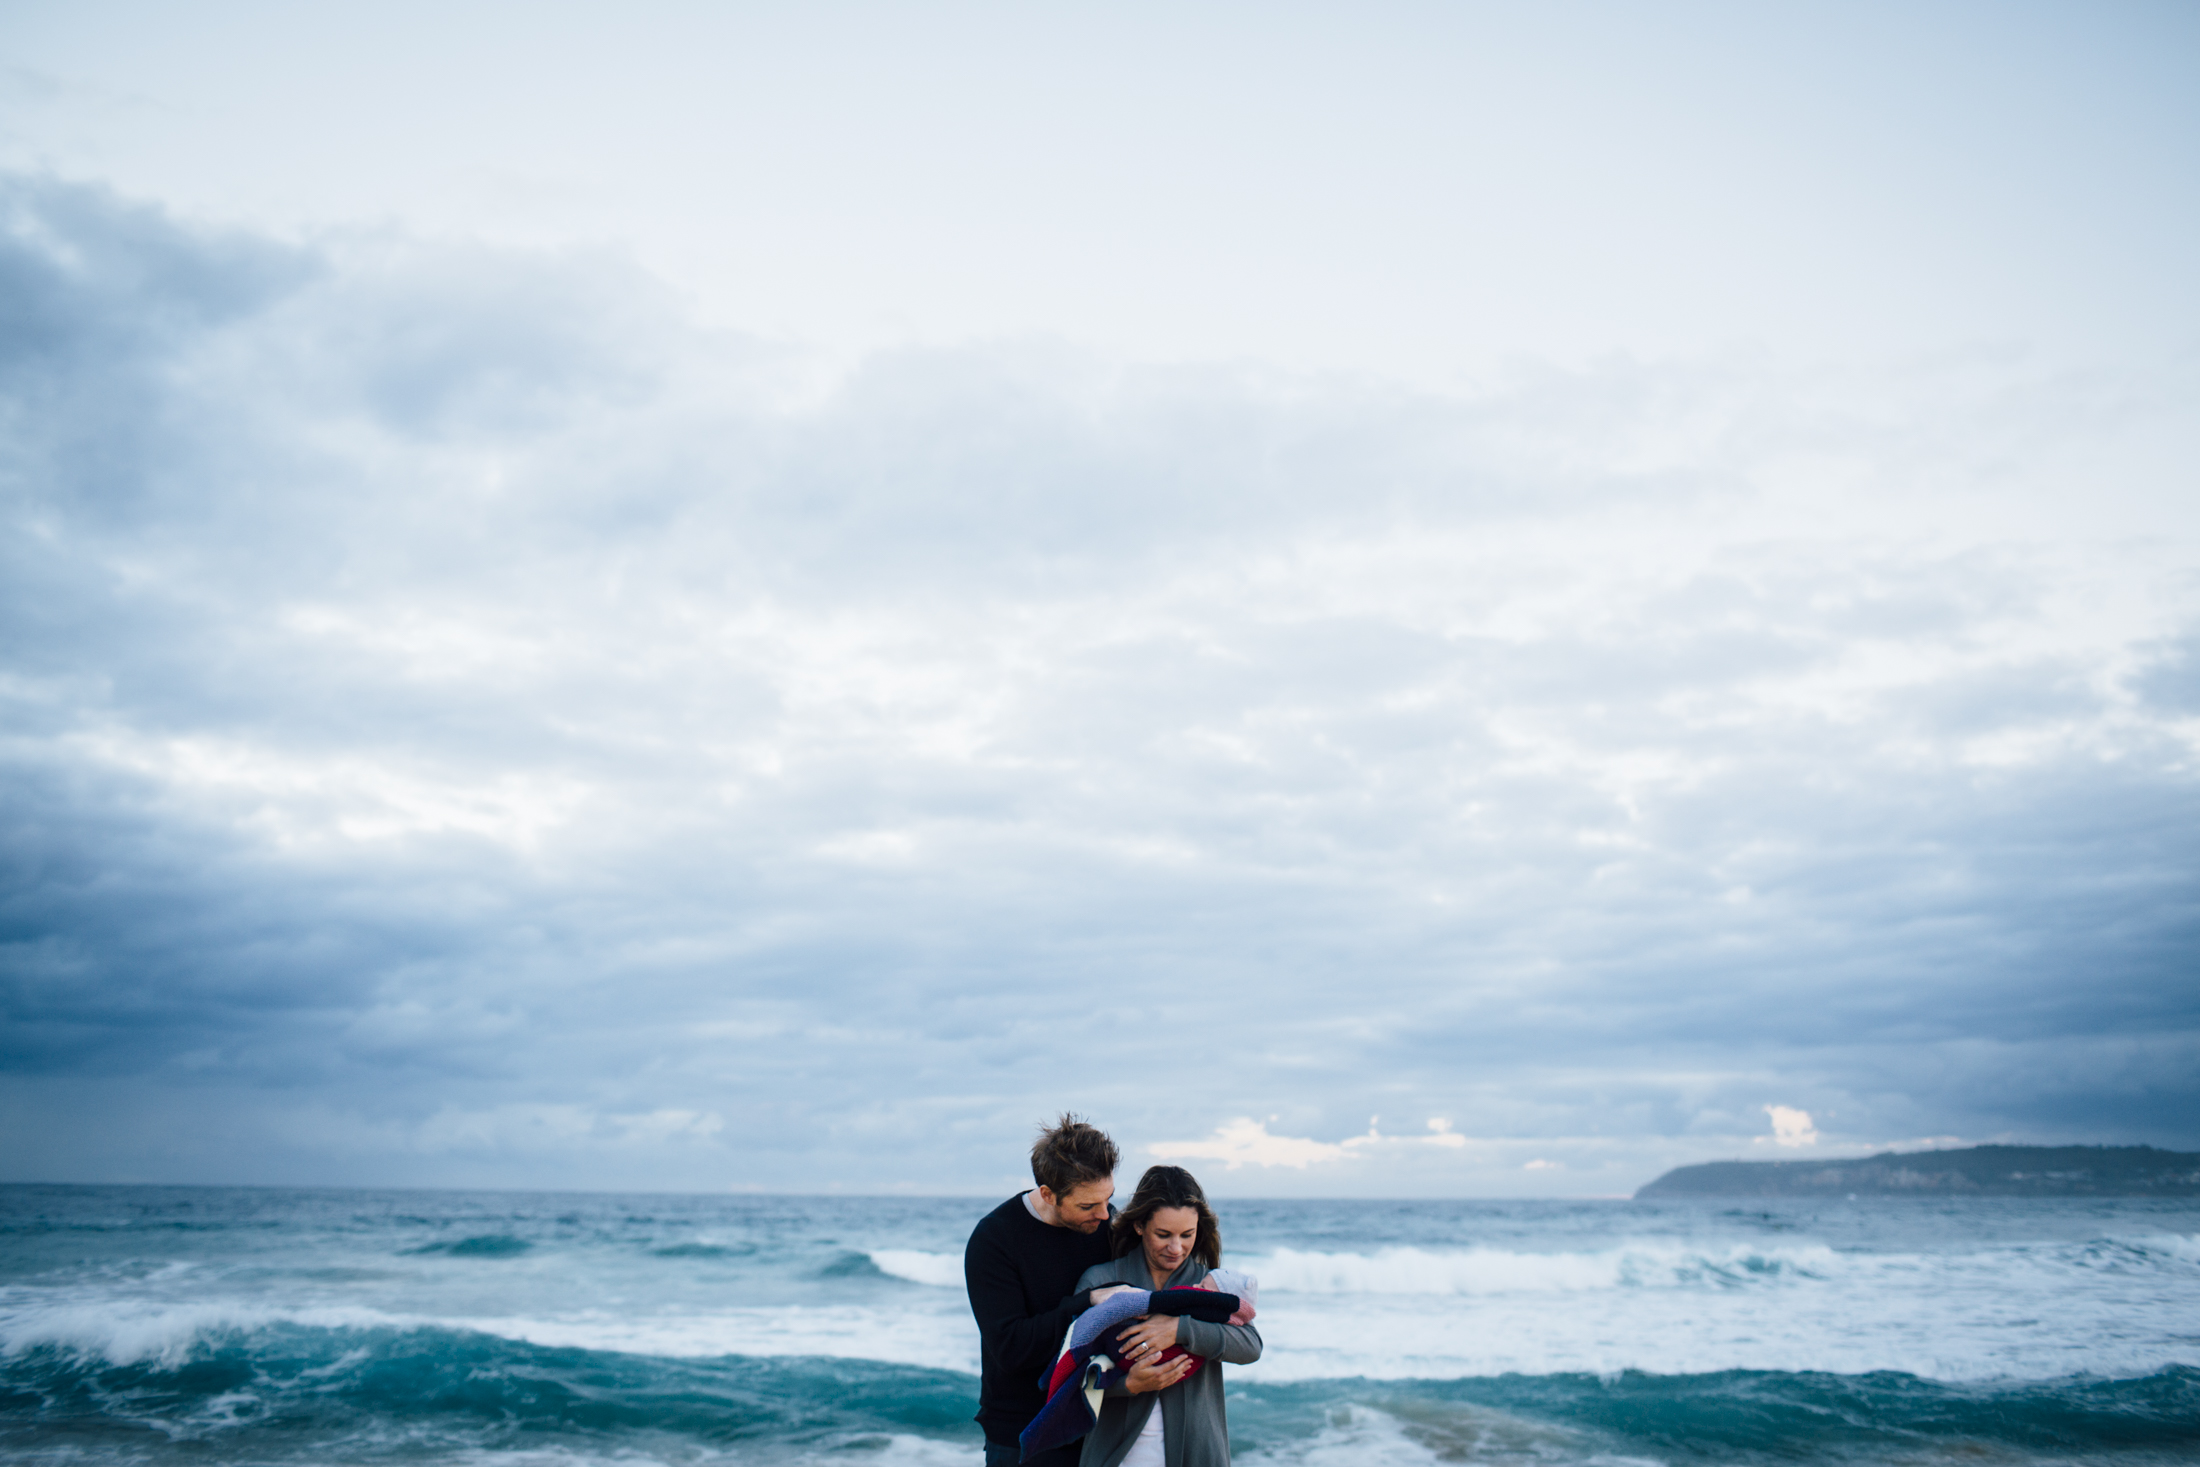 sheridan_nilsson_northern_beaches_family_lifestyle_photographer-4533.jpg